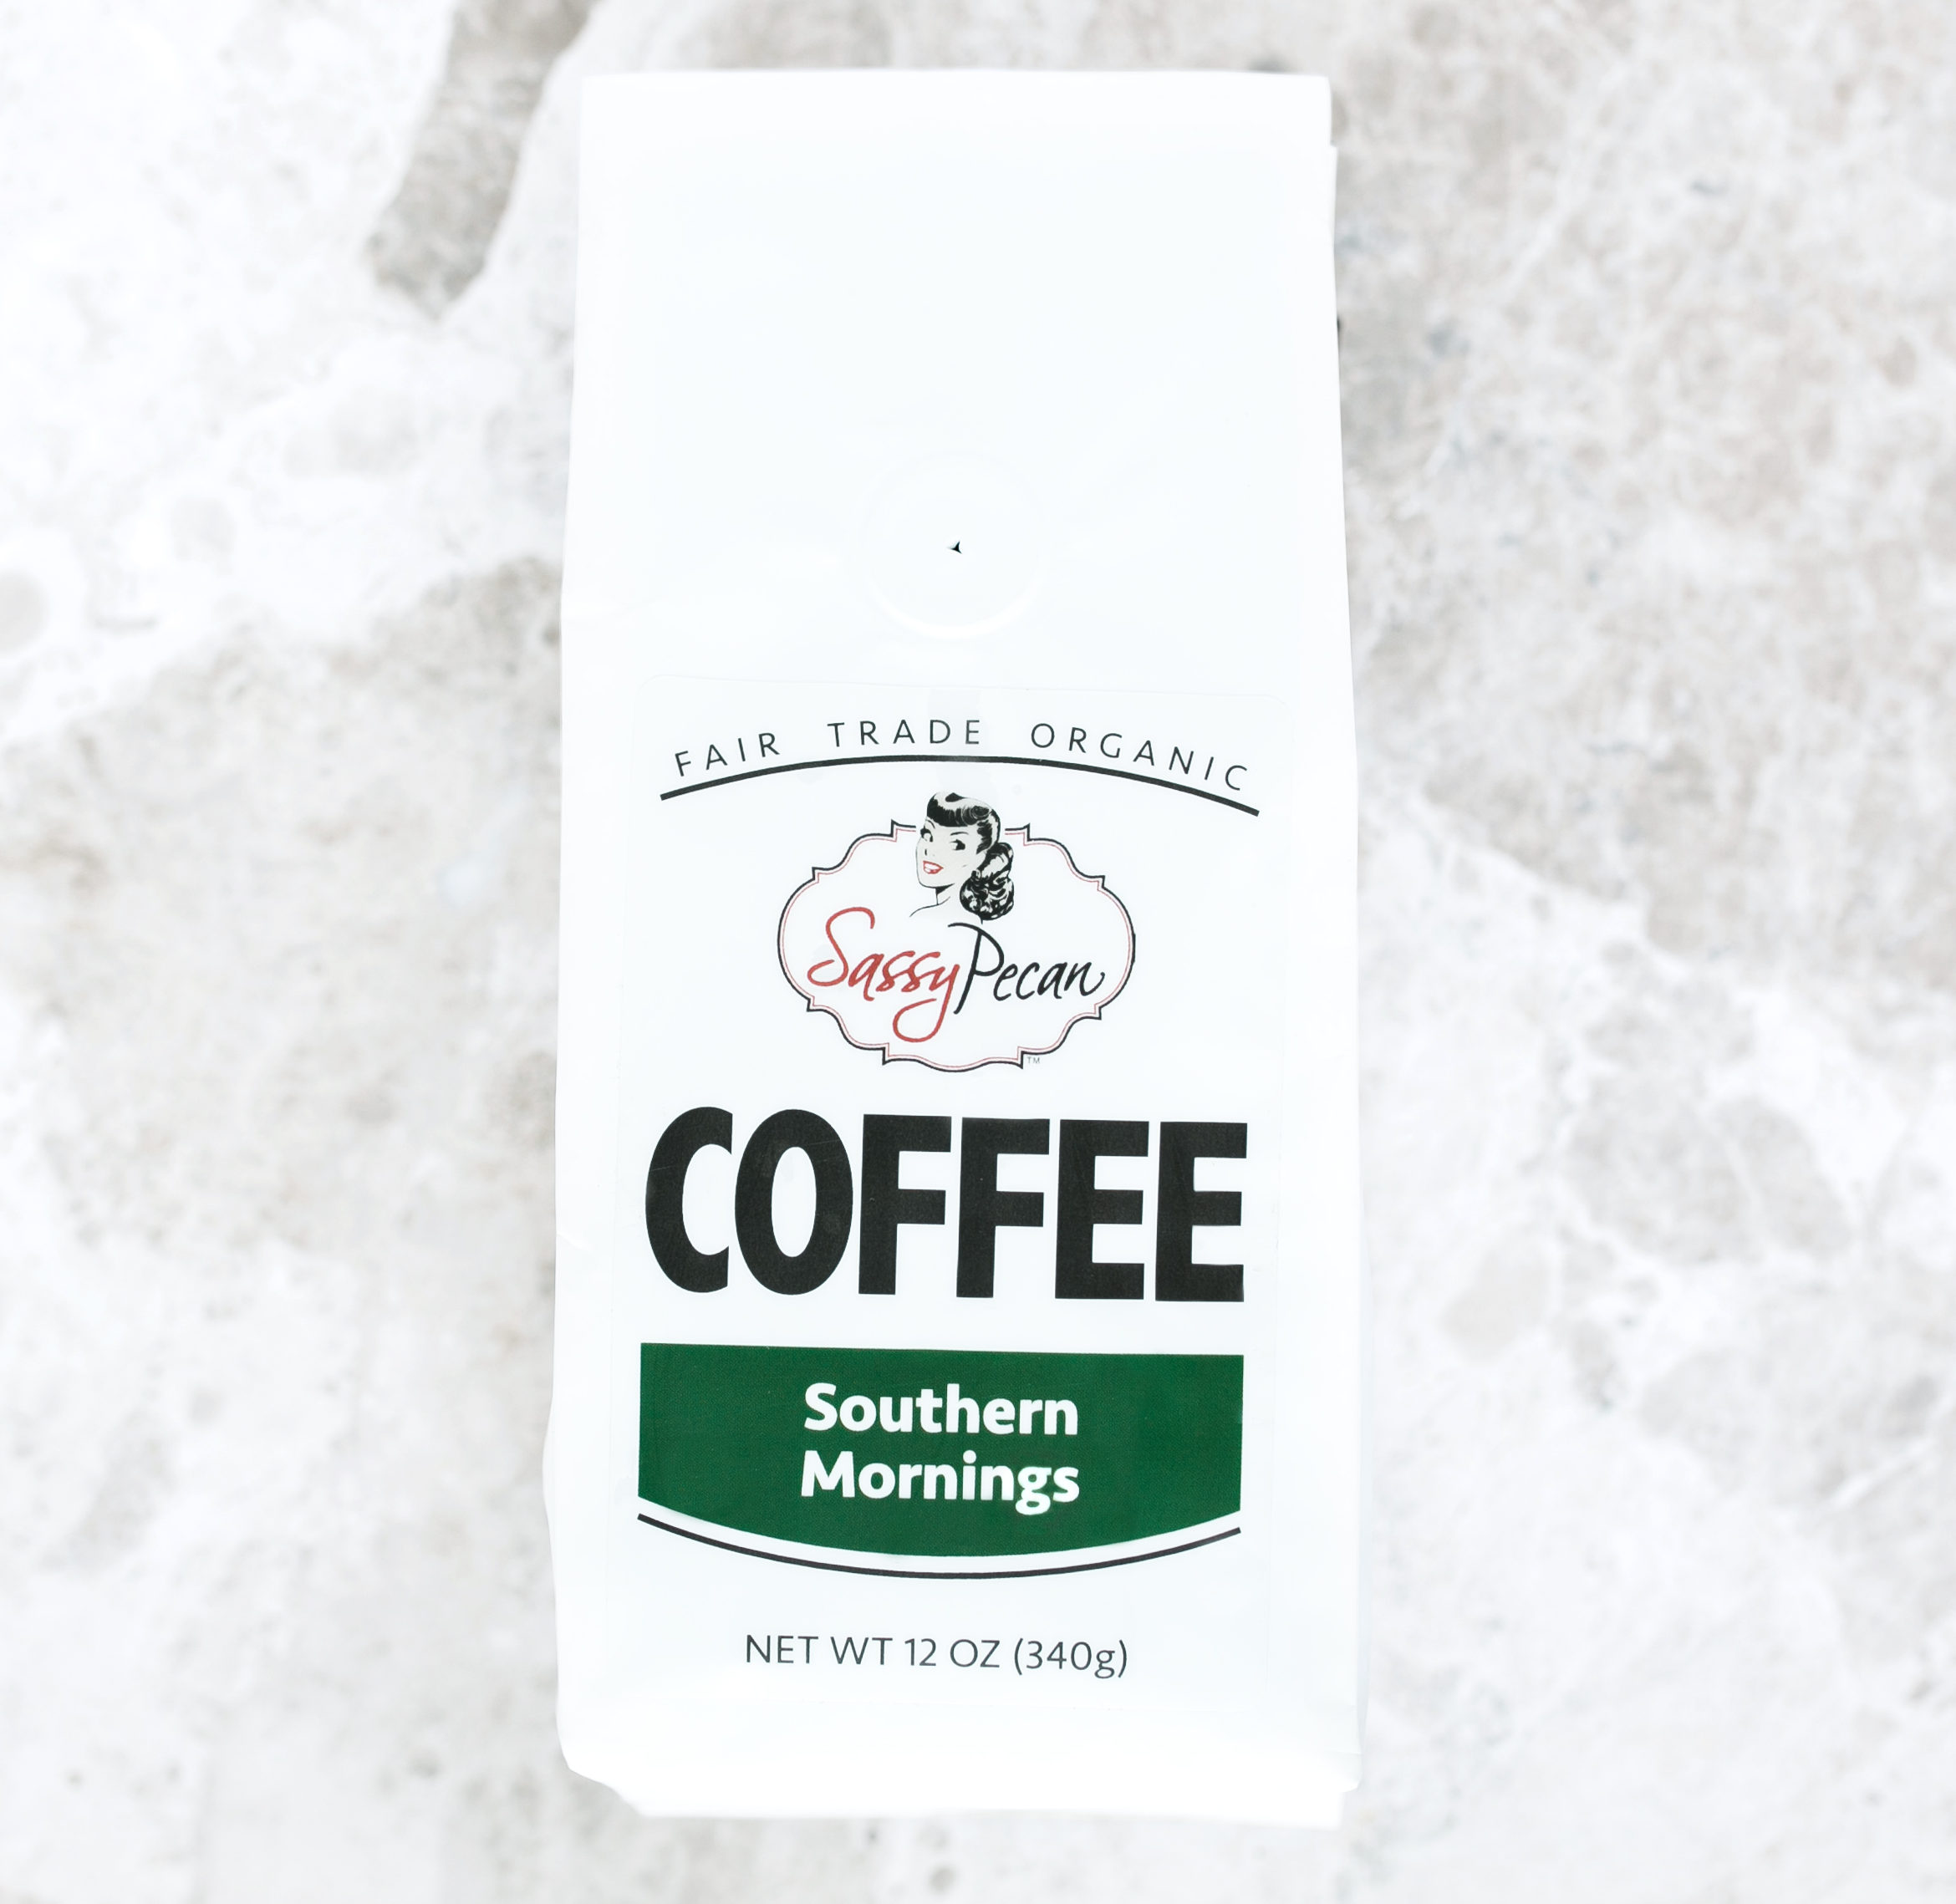 Southern Mornings Coffee